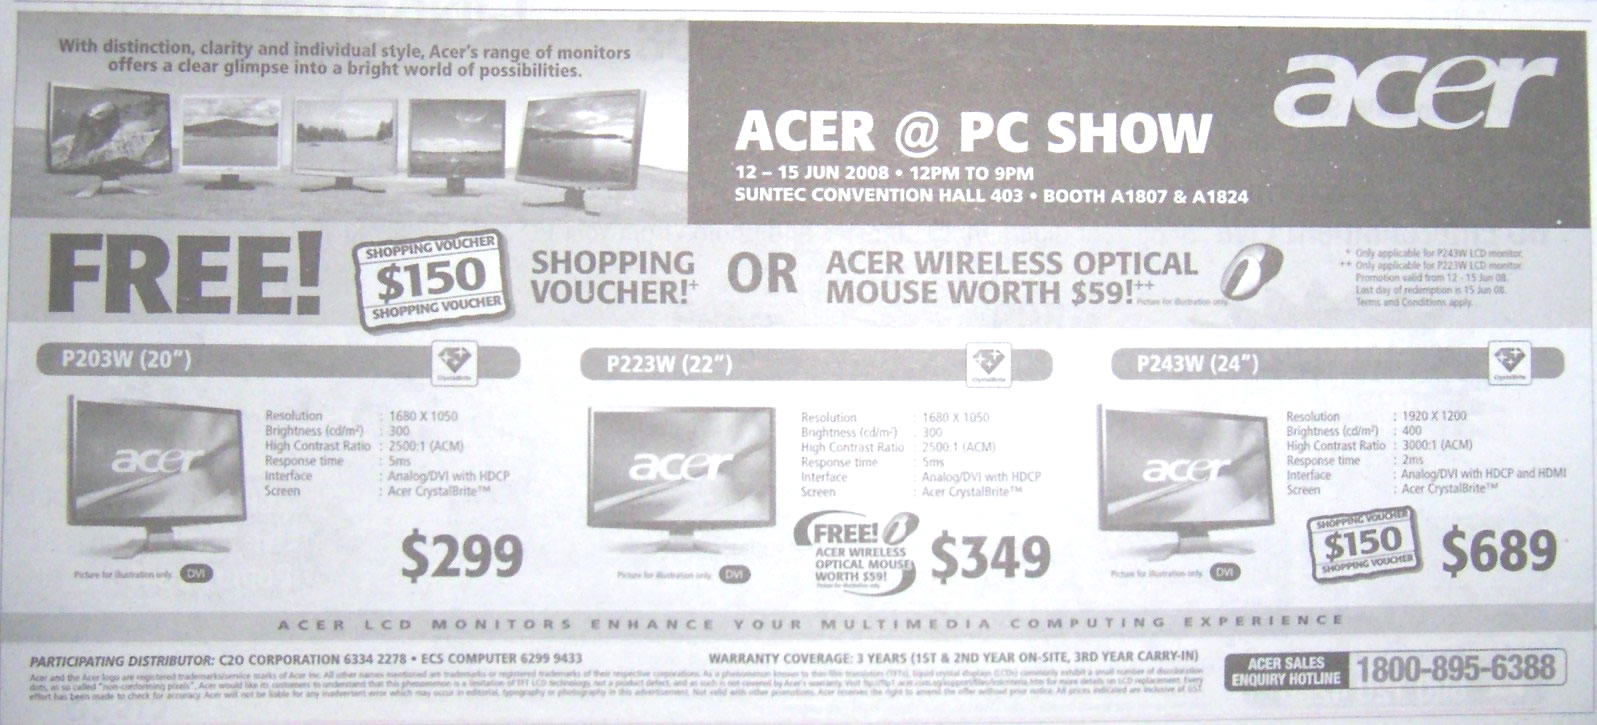 PC Show 2008 price list image brochure of Acer Monitors